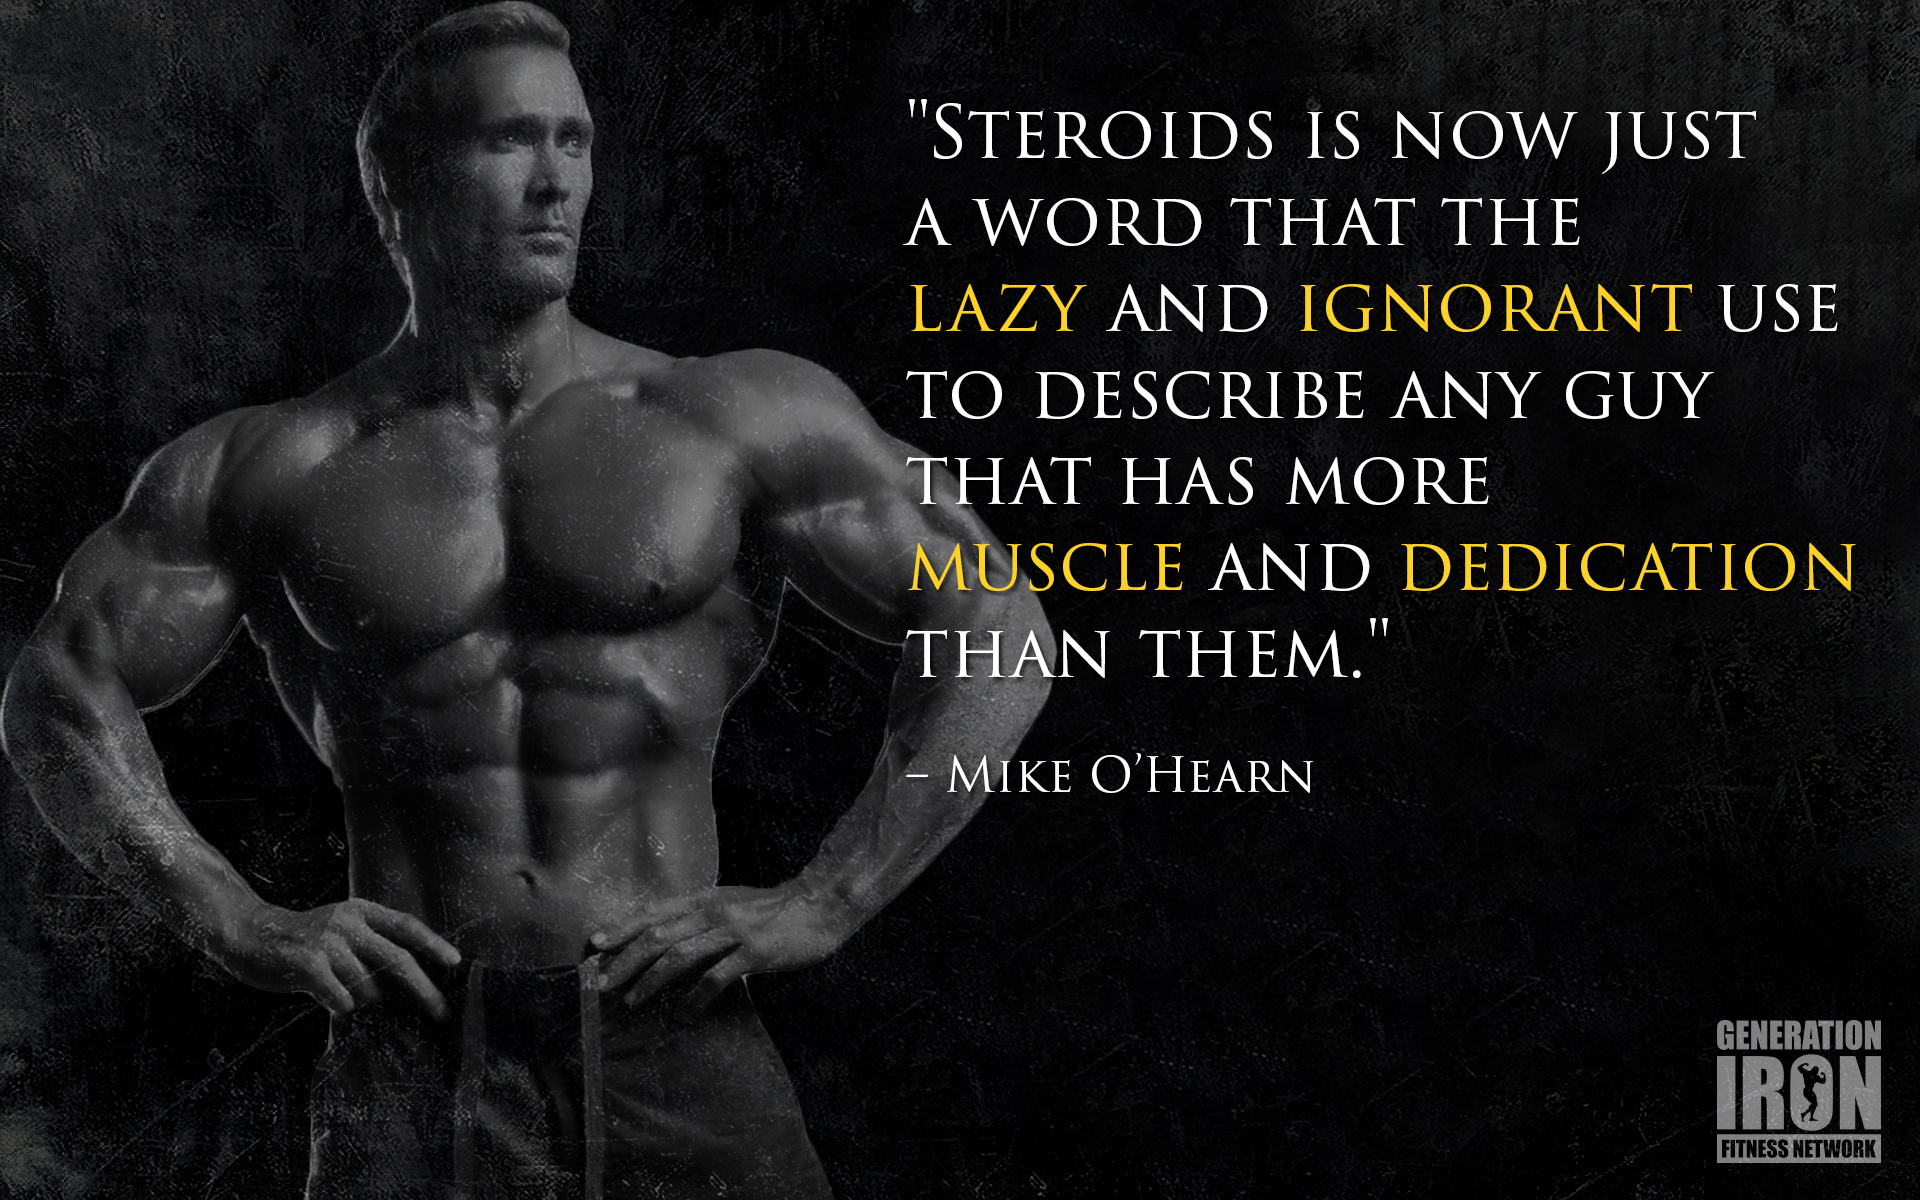 quotes about steroids